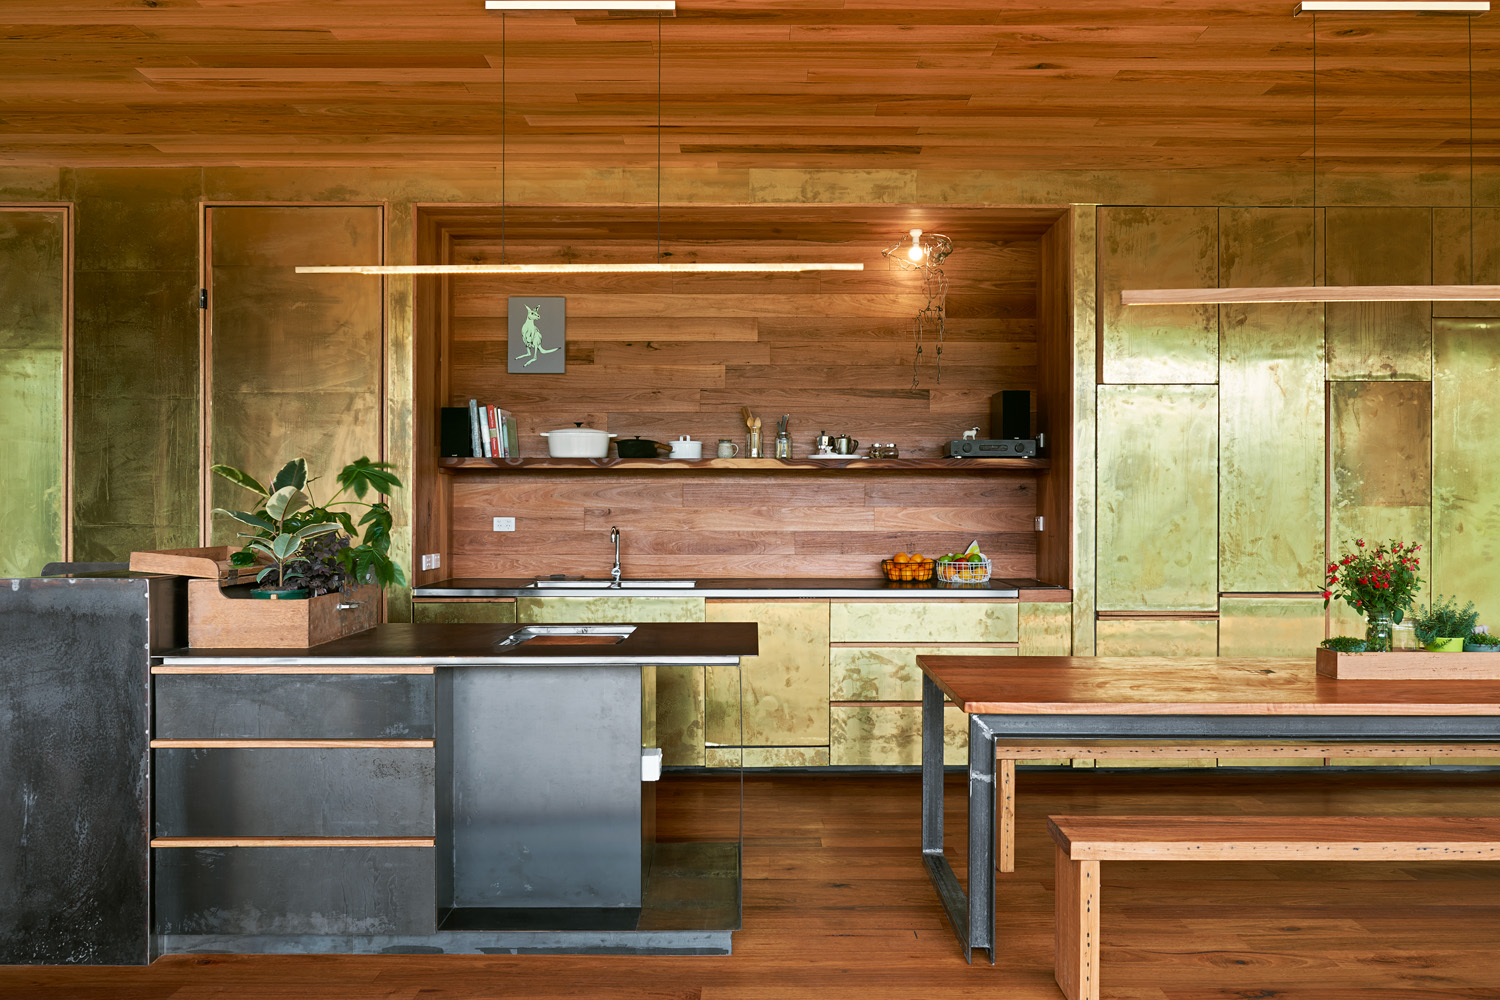 Copper walls and cabinetry play off against the